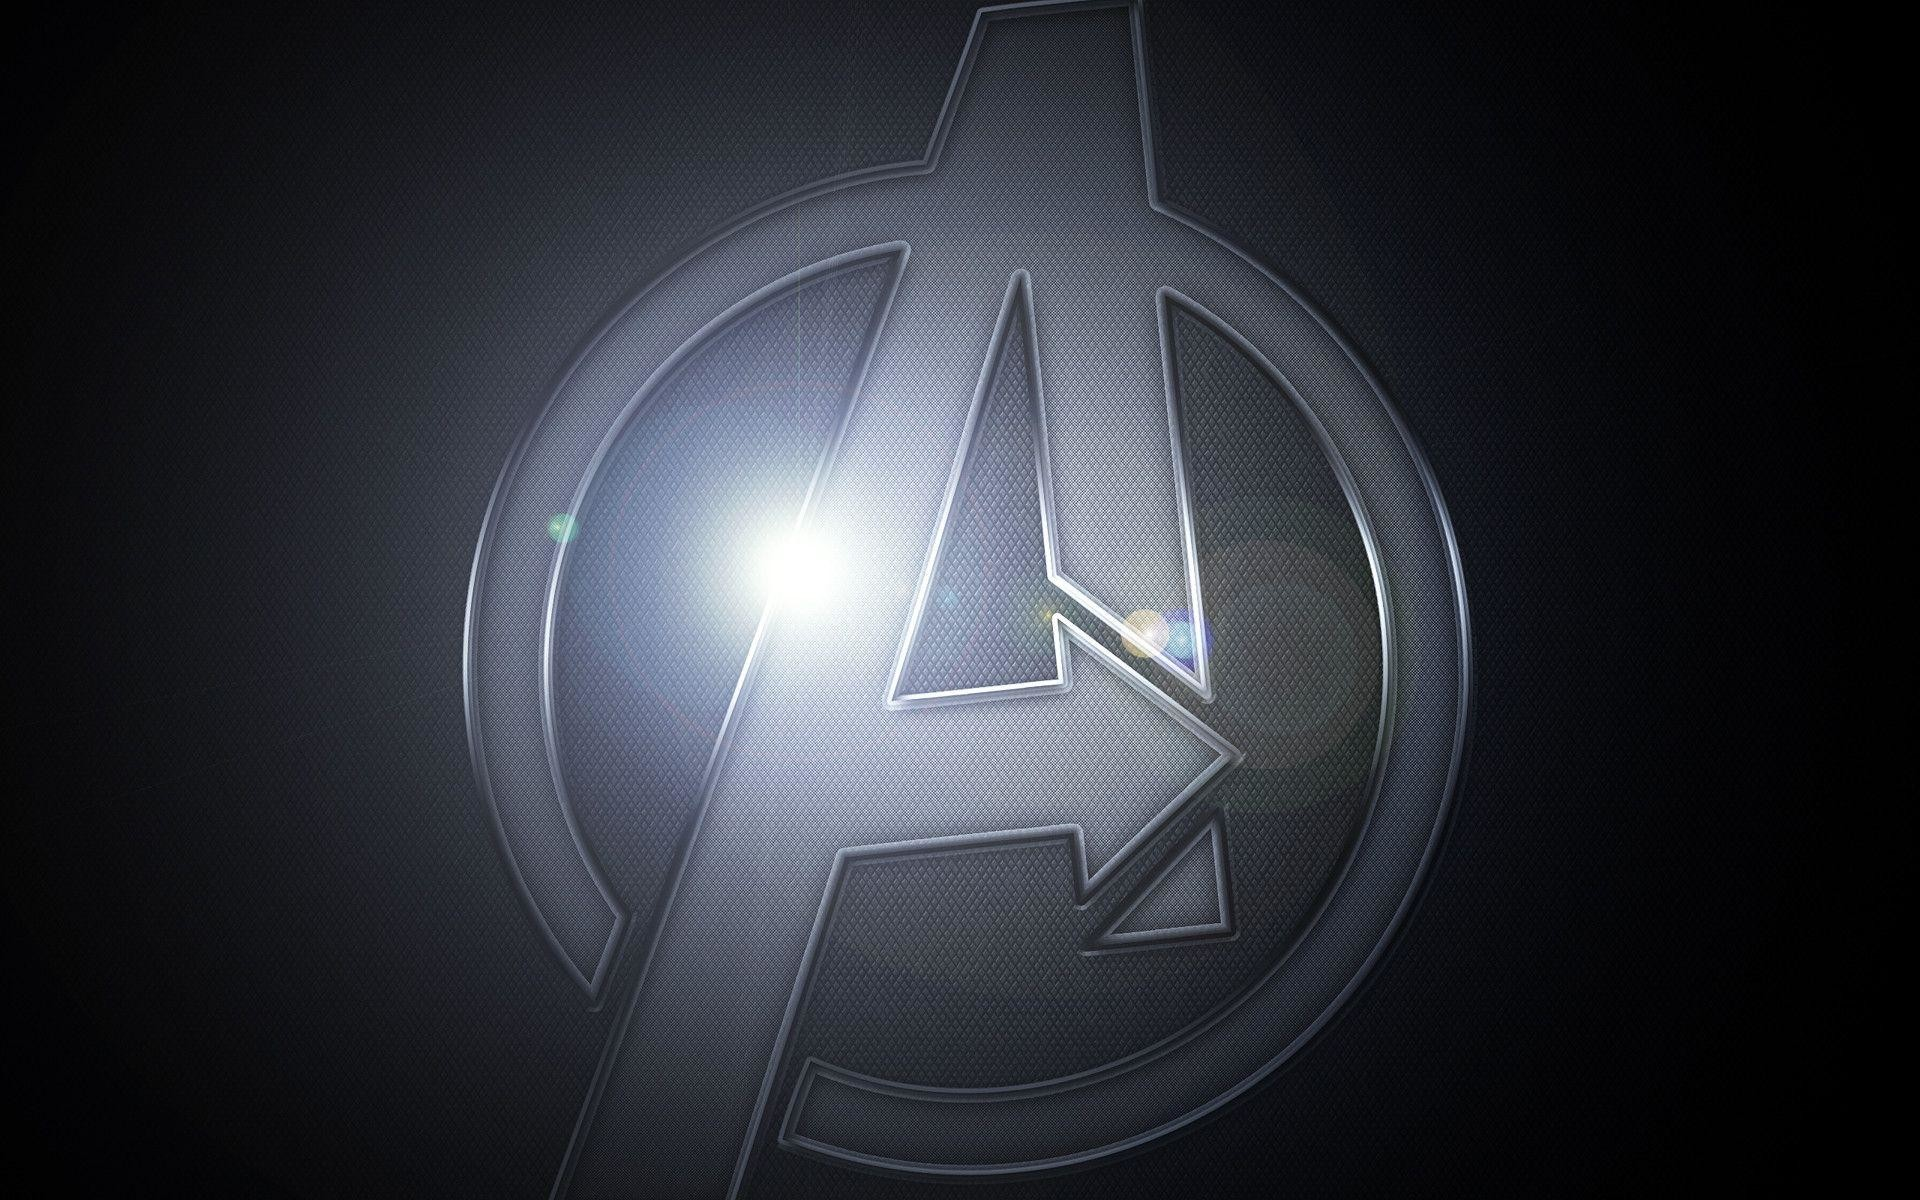 Marvel's The Avengers HD Logo Wallpaper – HD Wallpapers Free .